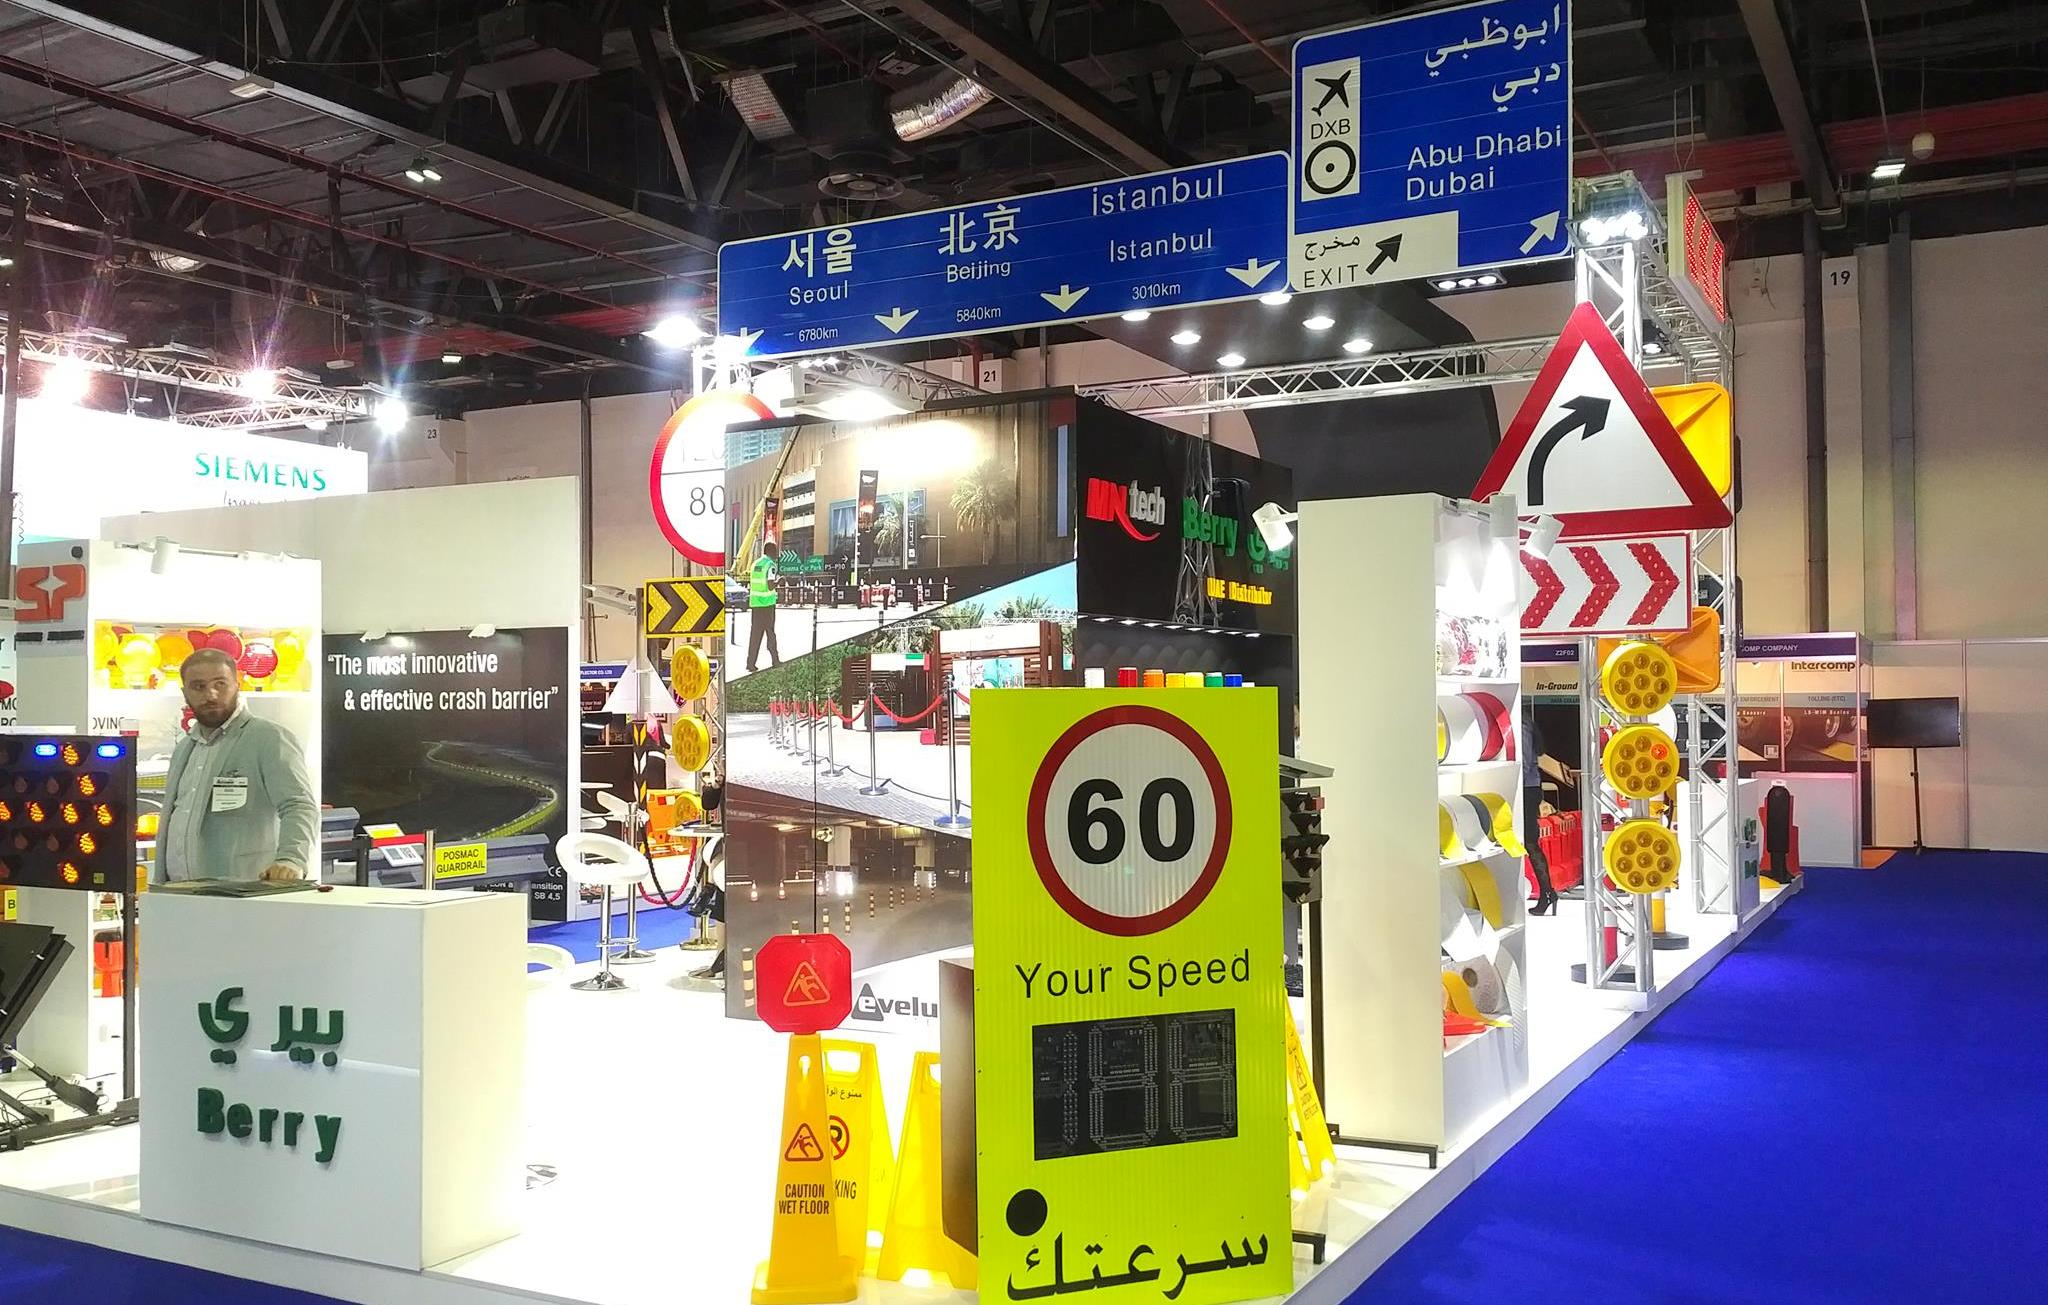 Traffic Safety Products | Dubai | BIRI Group مجموعة بيري